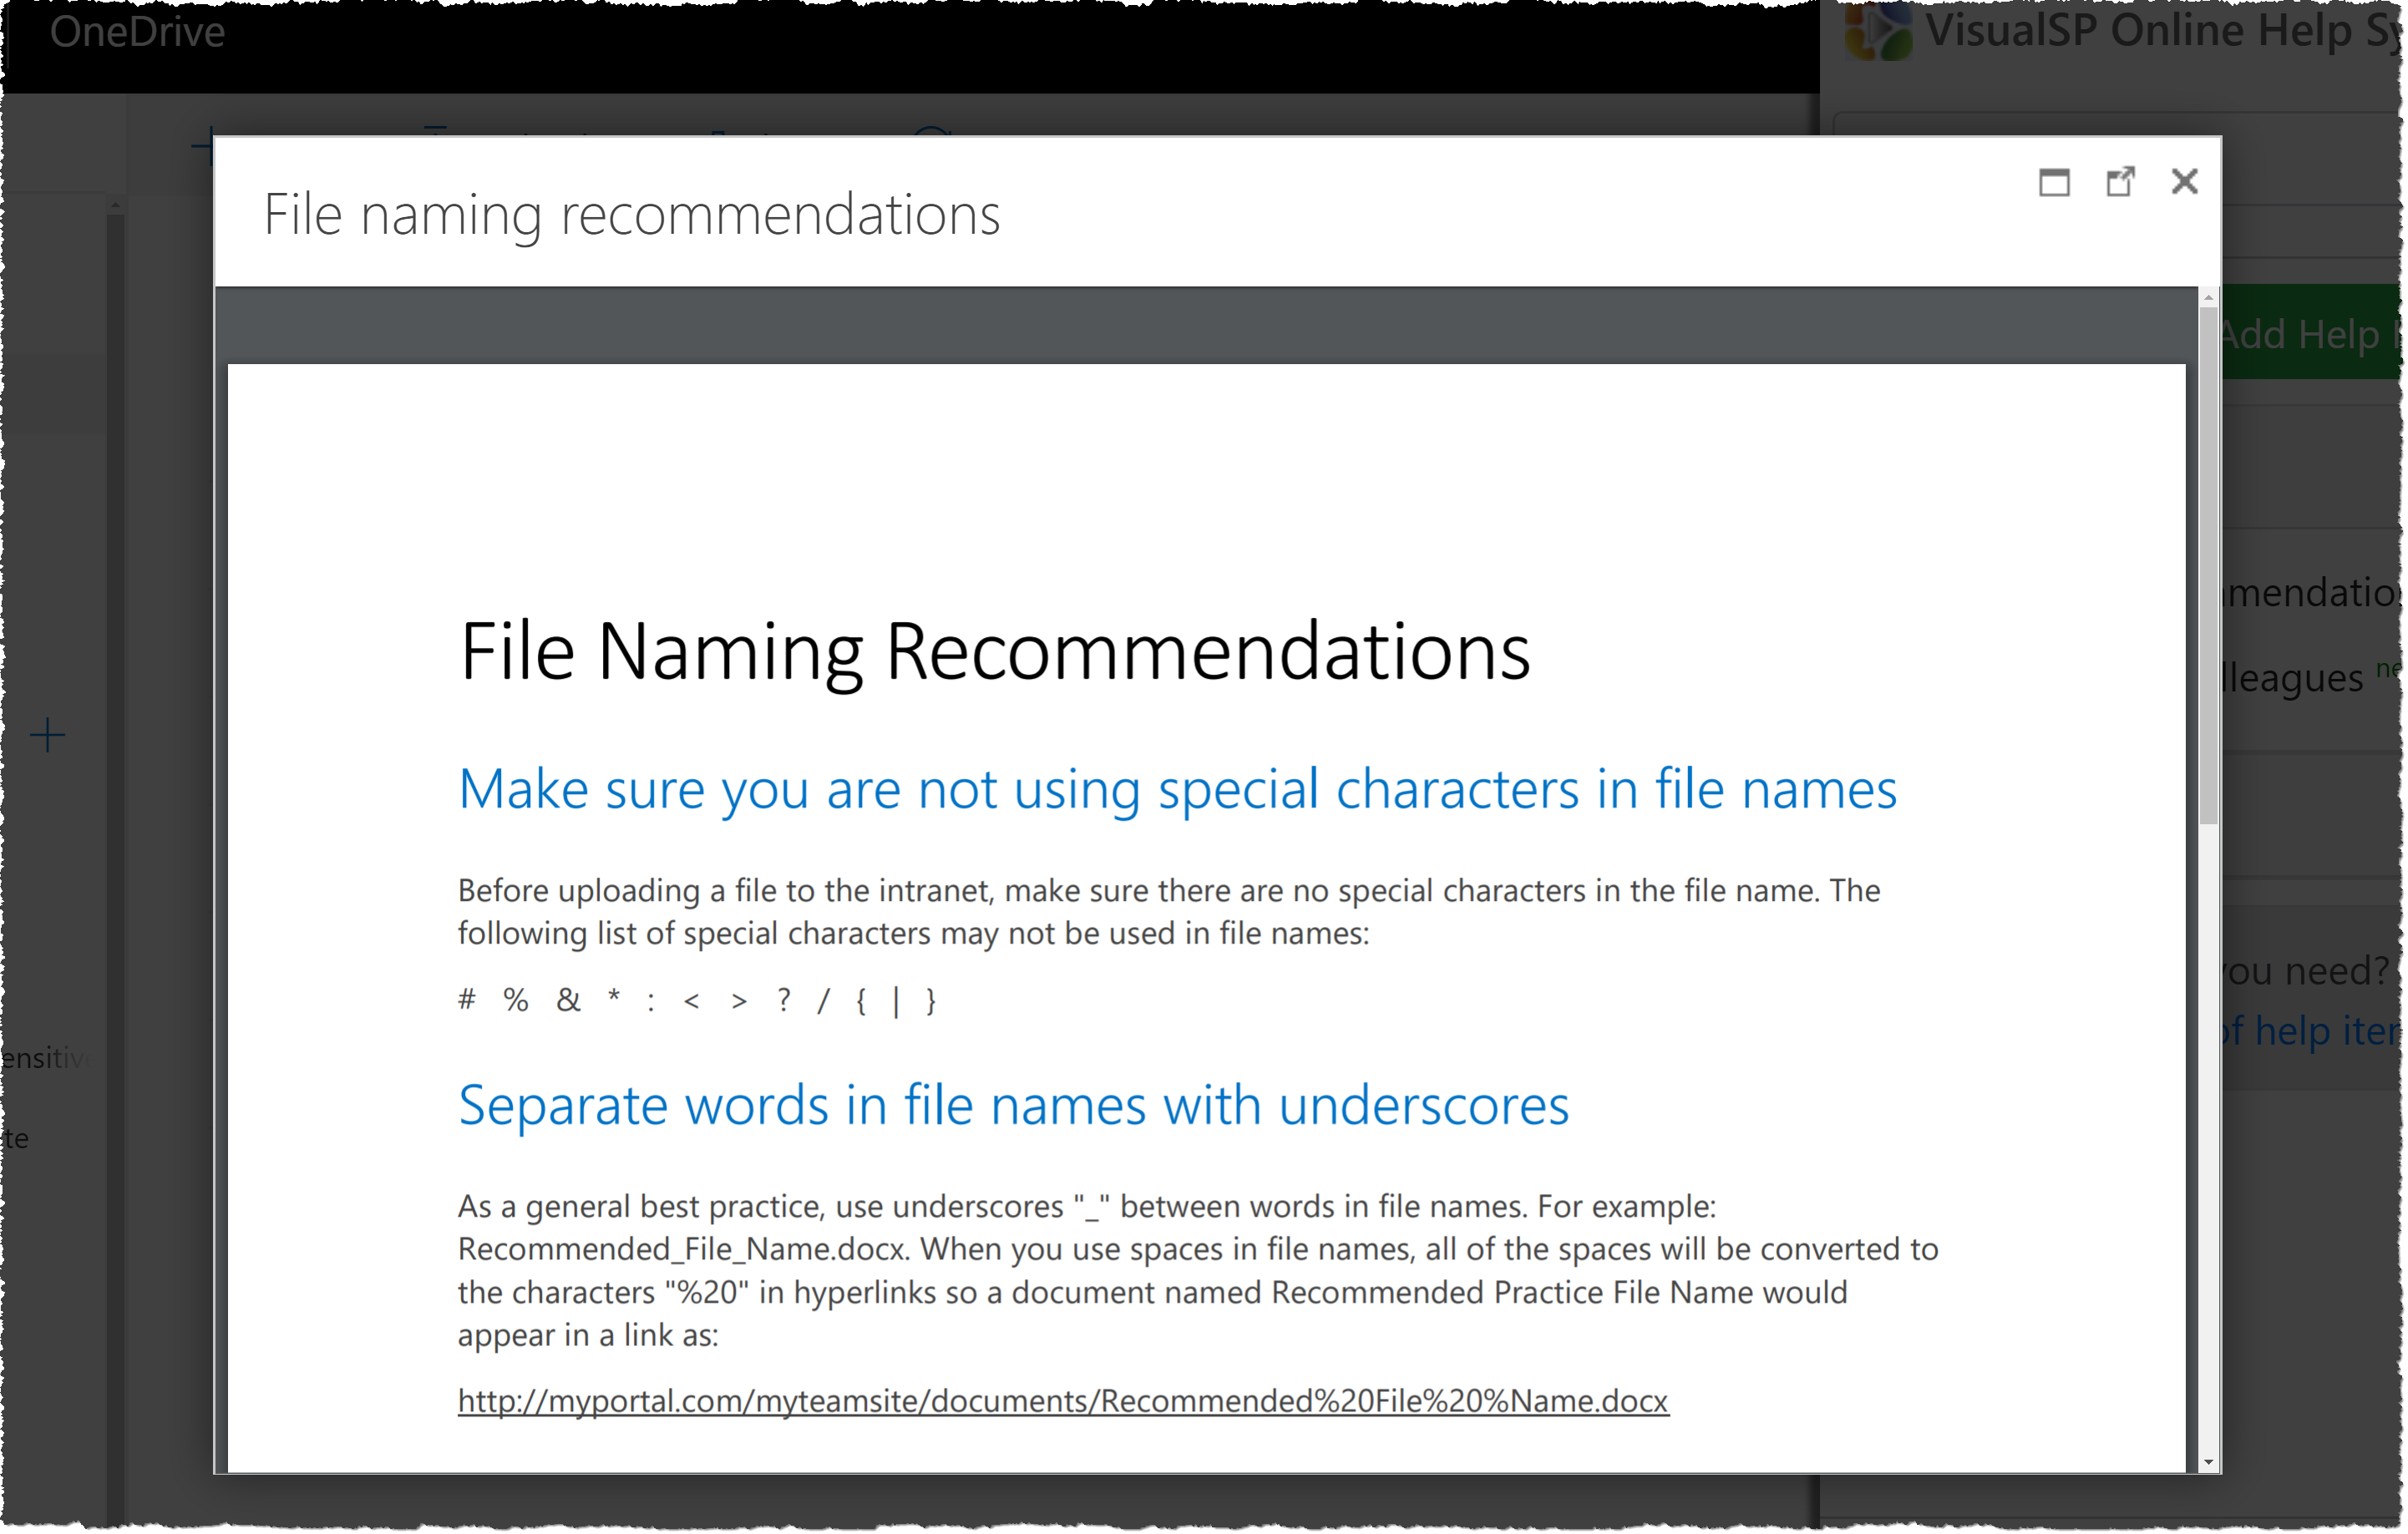 File naming recommendations